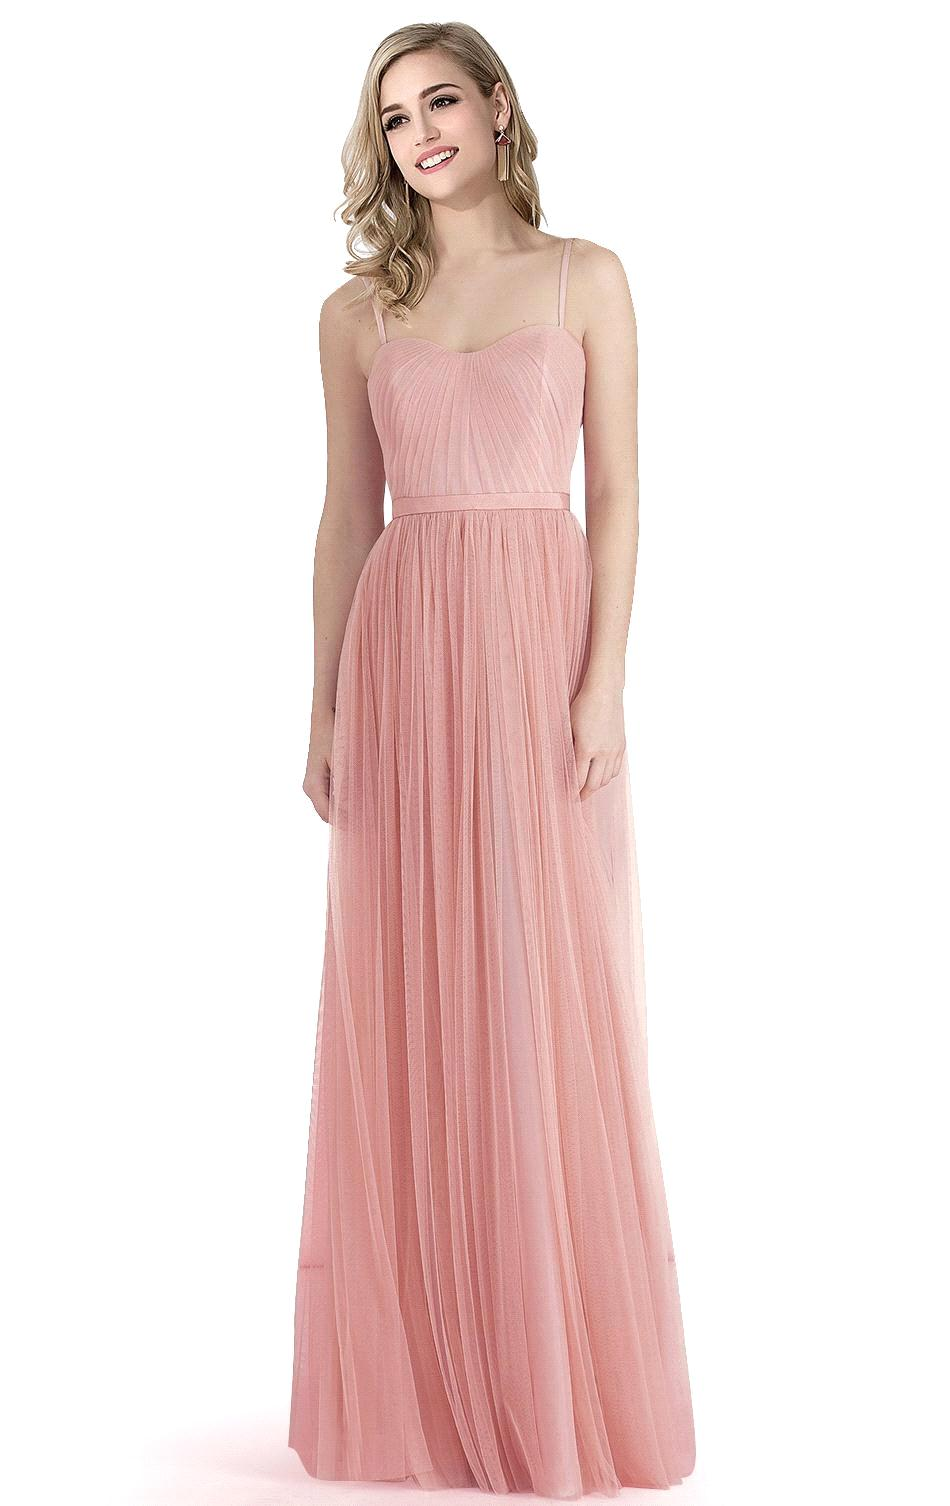 Inexpensive bridesmaid dresses under 50 choice image braidsmaid dresses under 50 ombrellifo online get cheap long straps bridesmaid dress aliexpress sexy spaghetti straps a line long cheap bridesmaid ombrellifo Image collections